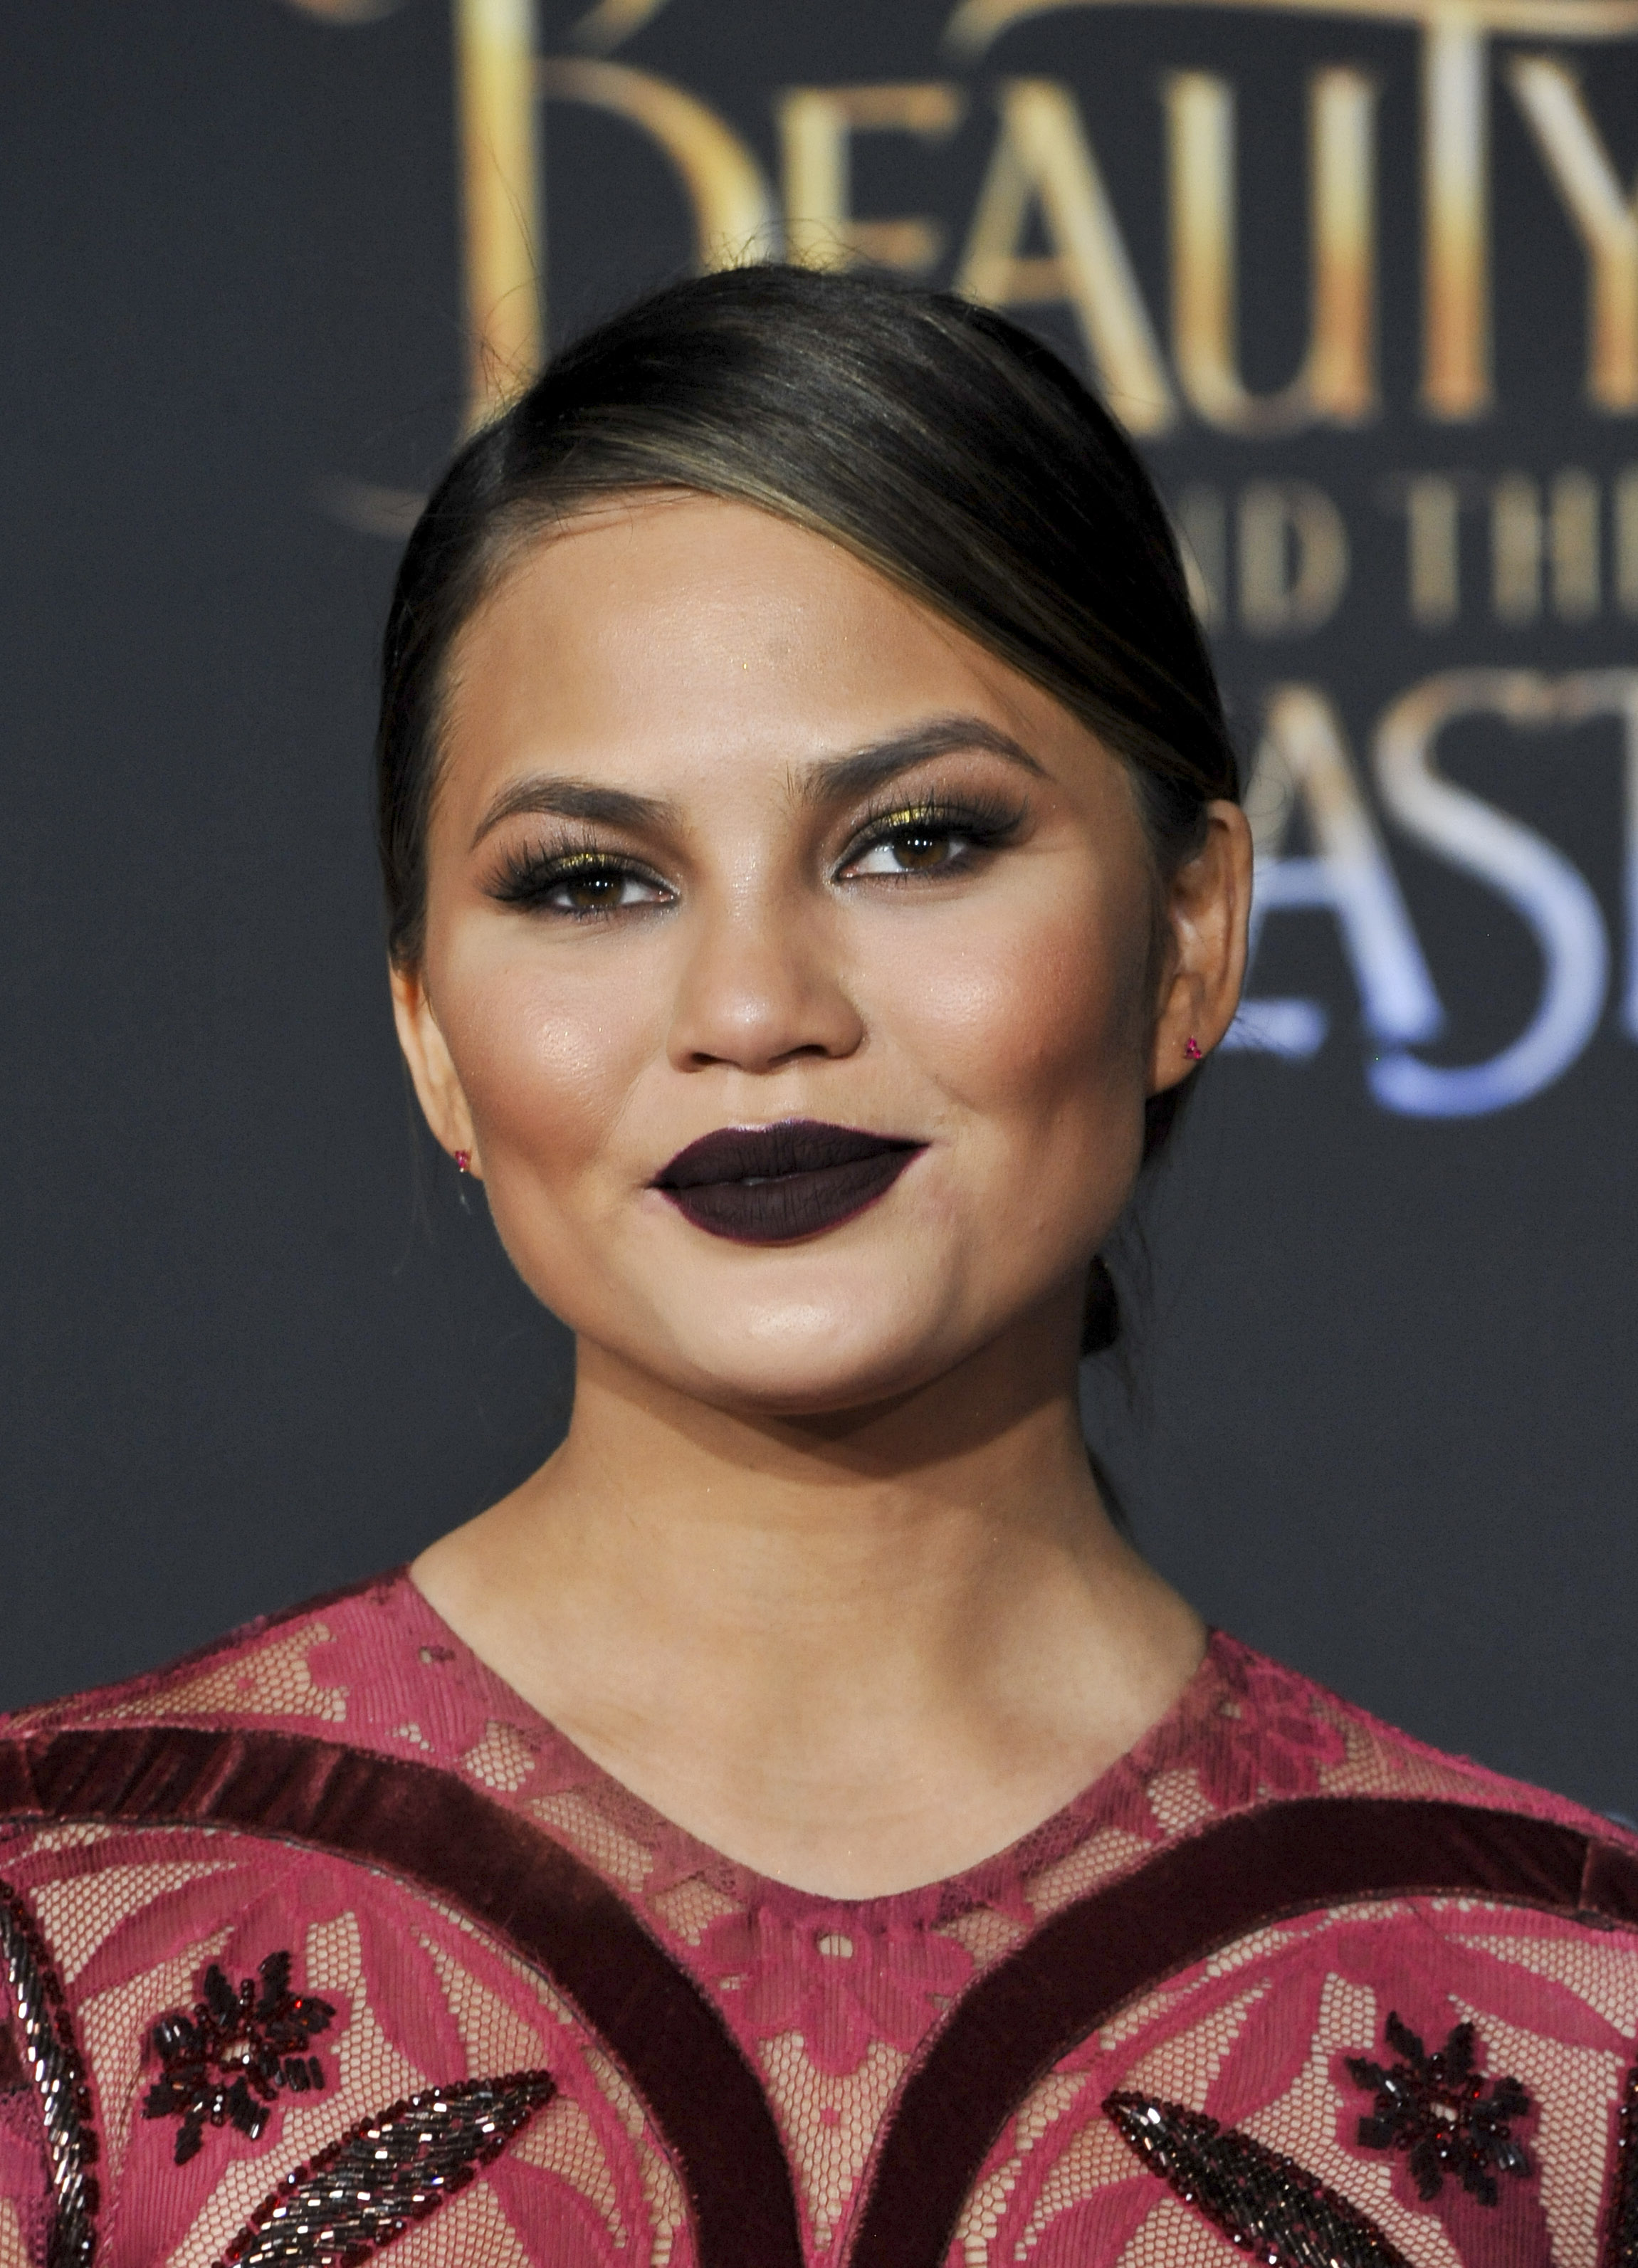 Film Premiere Beauty and The Beast  Featuring: Chrissy Teigen  Where: Los Angeles, California, United States  When: 03 Mar 2017 Credit: Apega/WENN.com